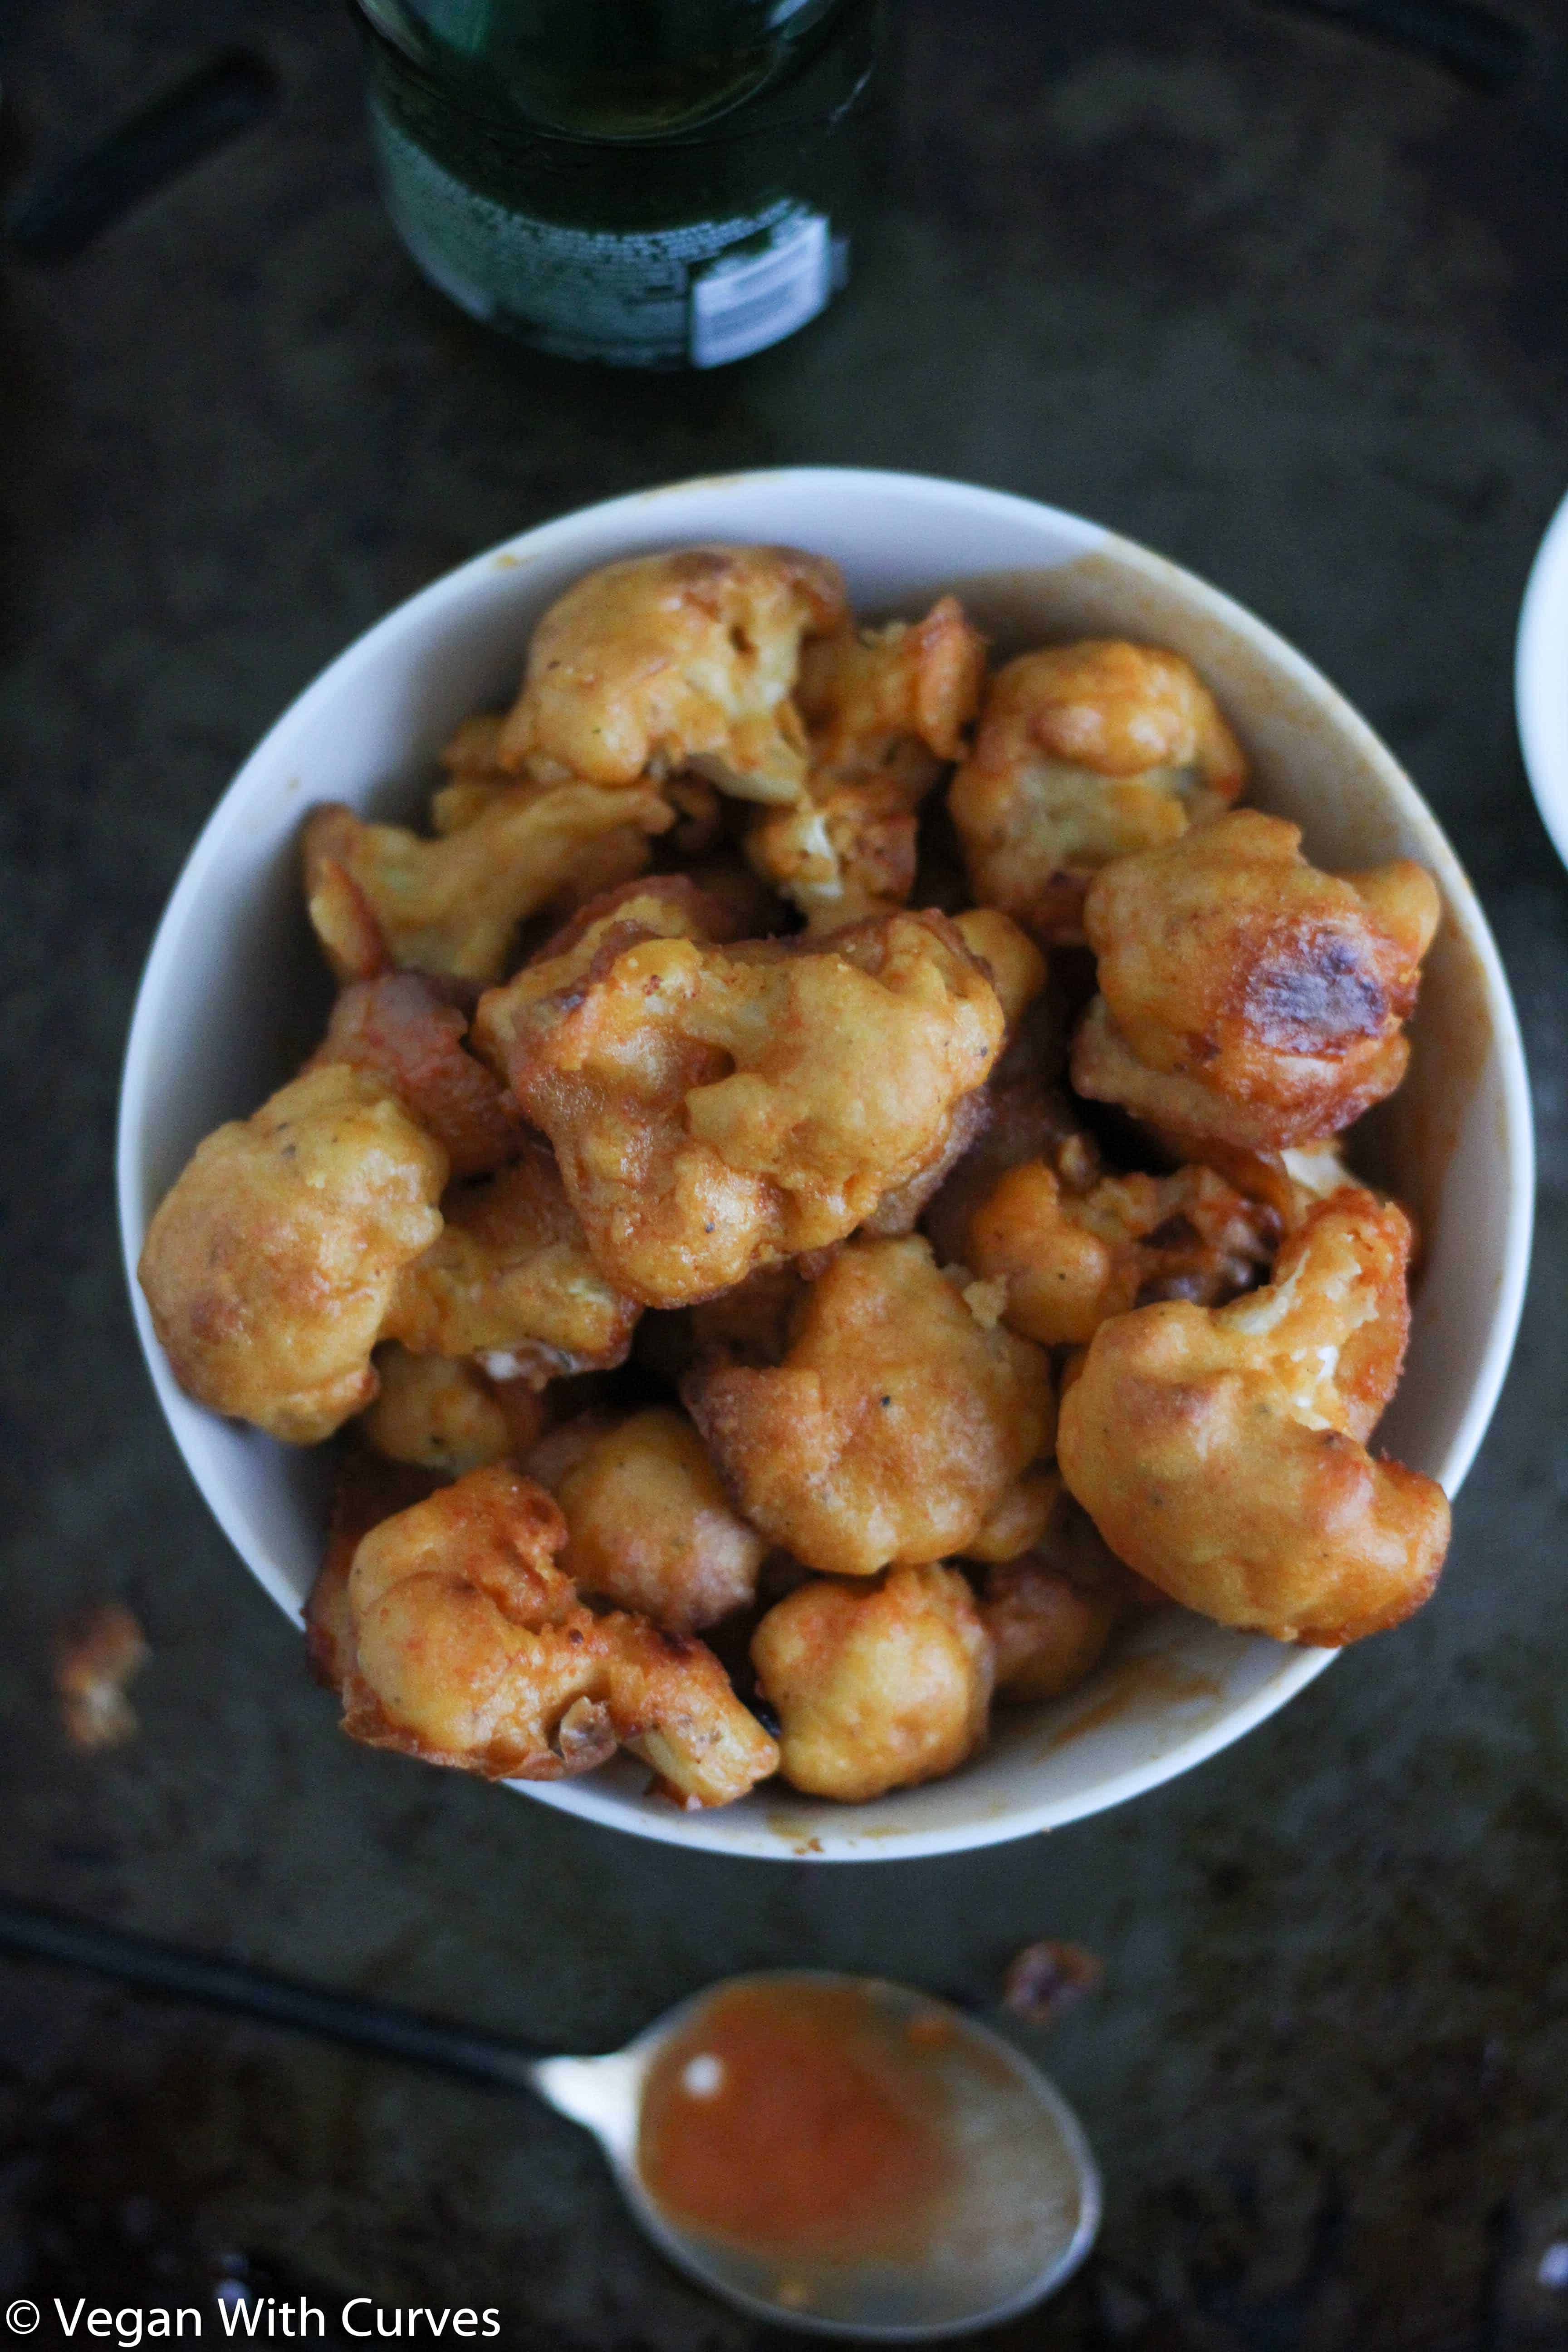 close up shot of baked cauliflower bites in a white bowl next to a beer bottle